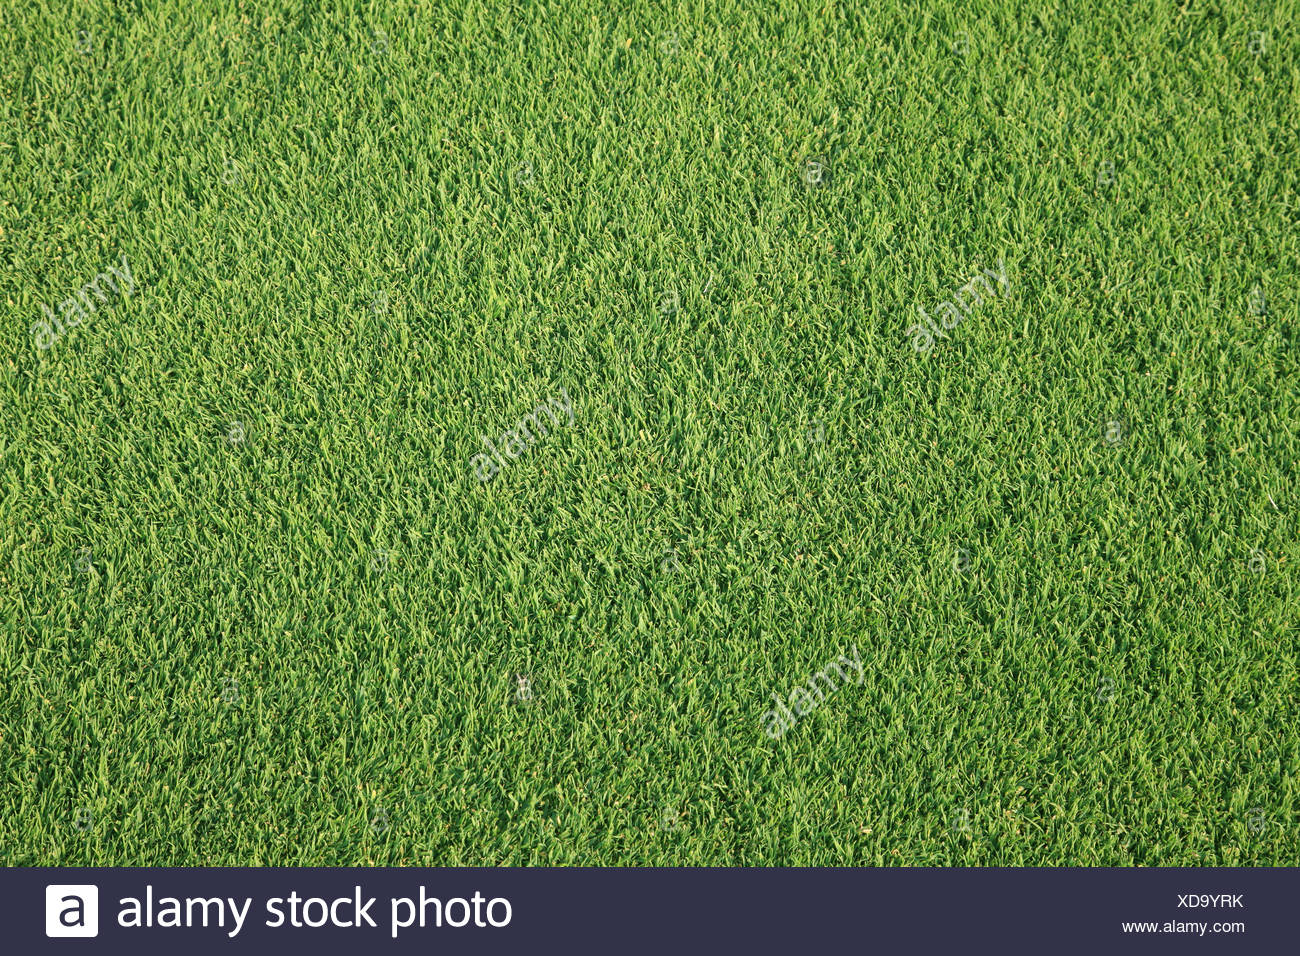 grass on golf course - Stock Image